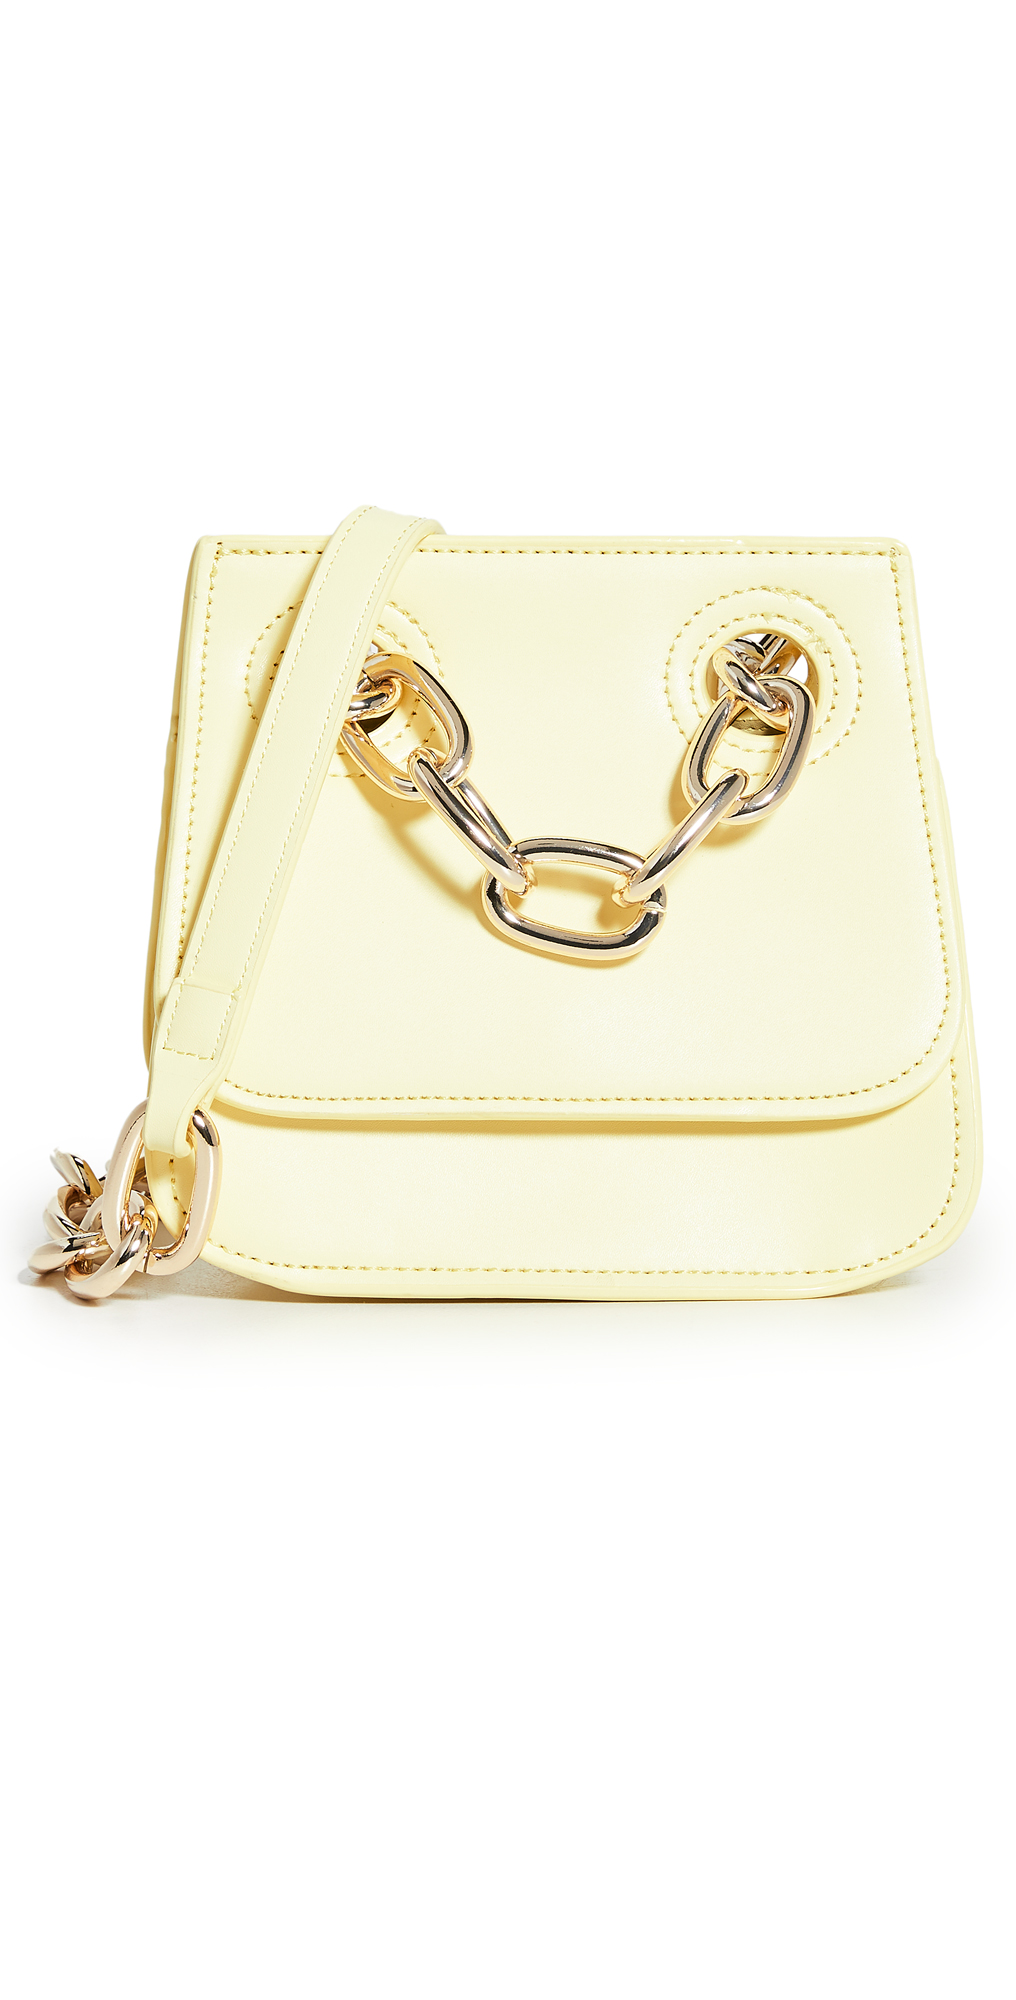 House of Want HOW We Are Original Shoulder Flap Bag